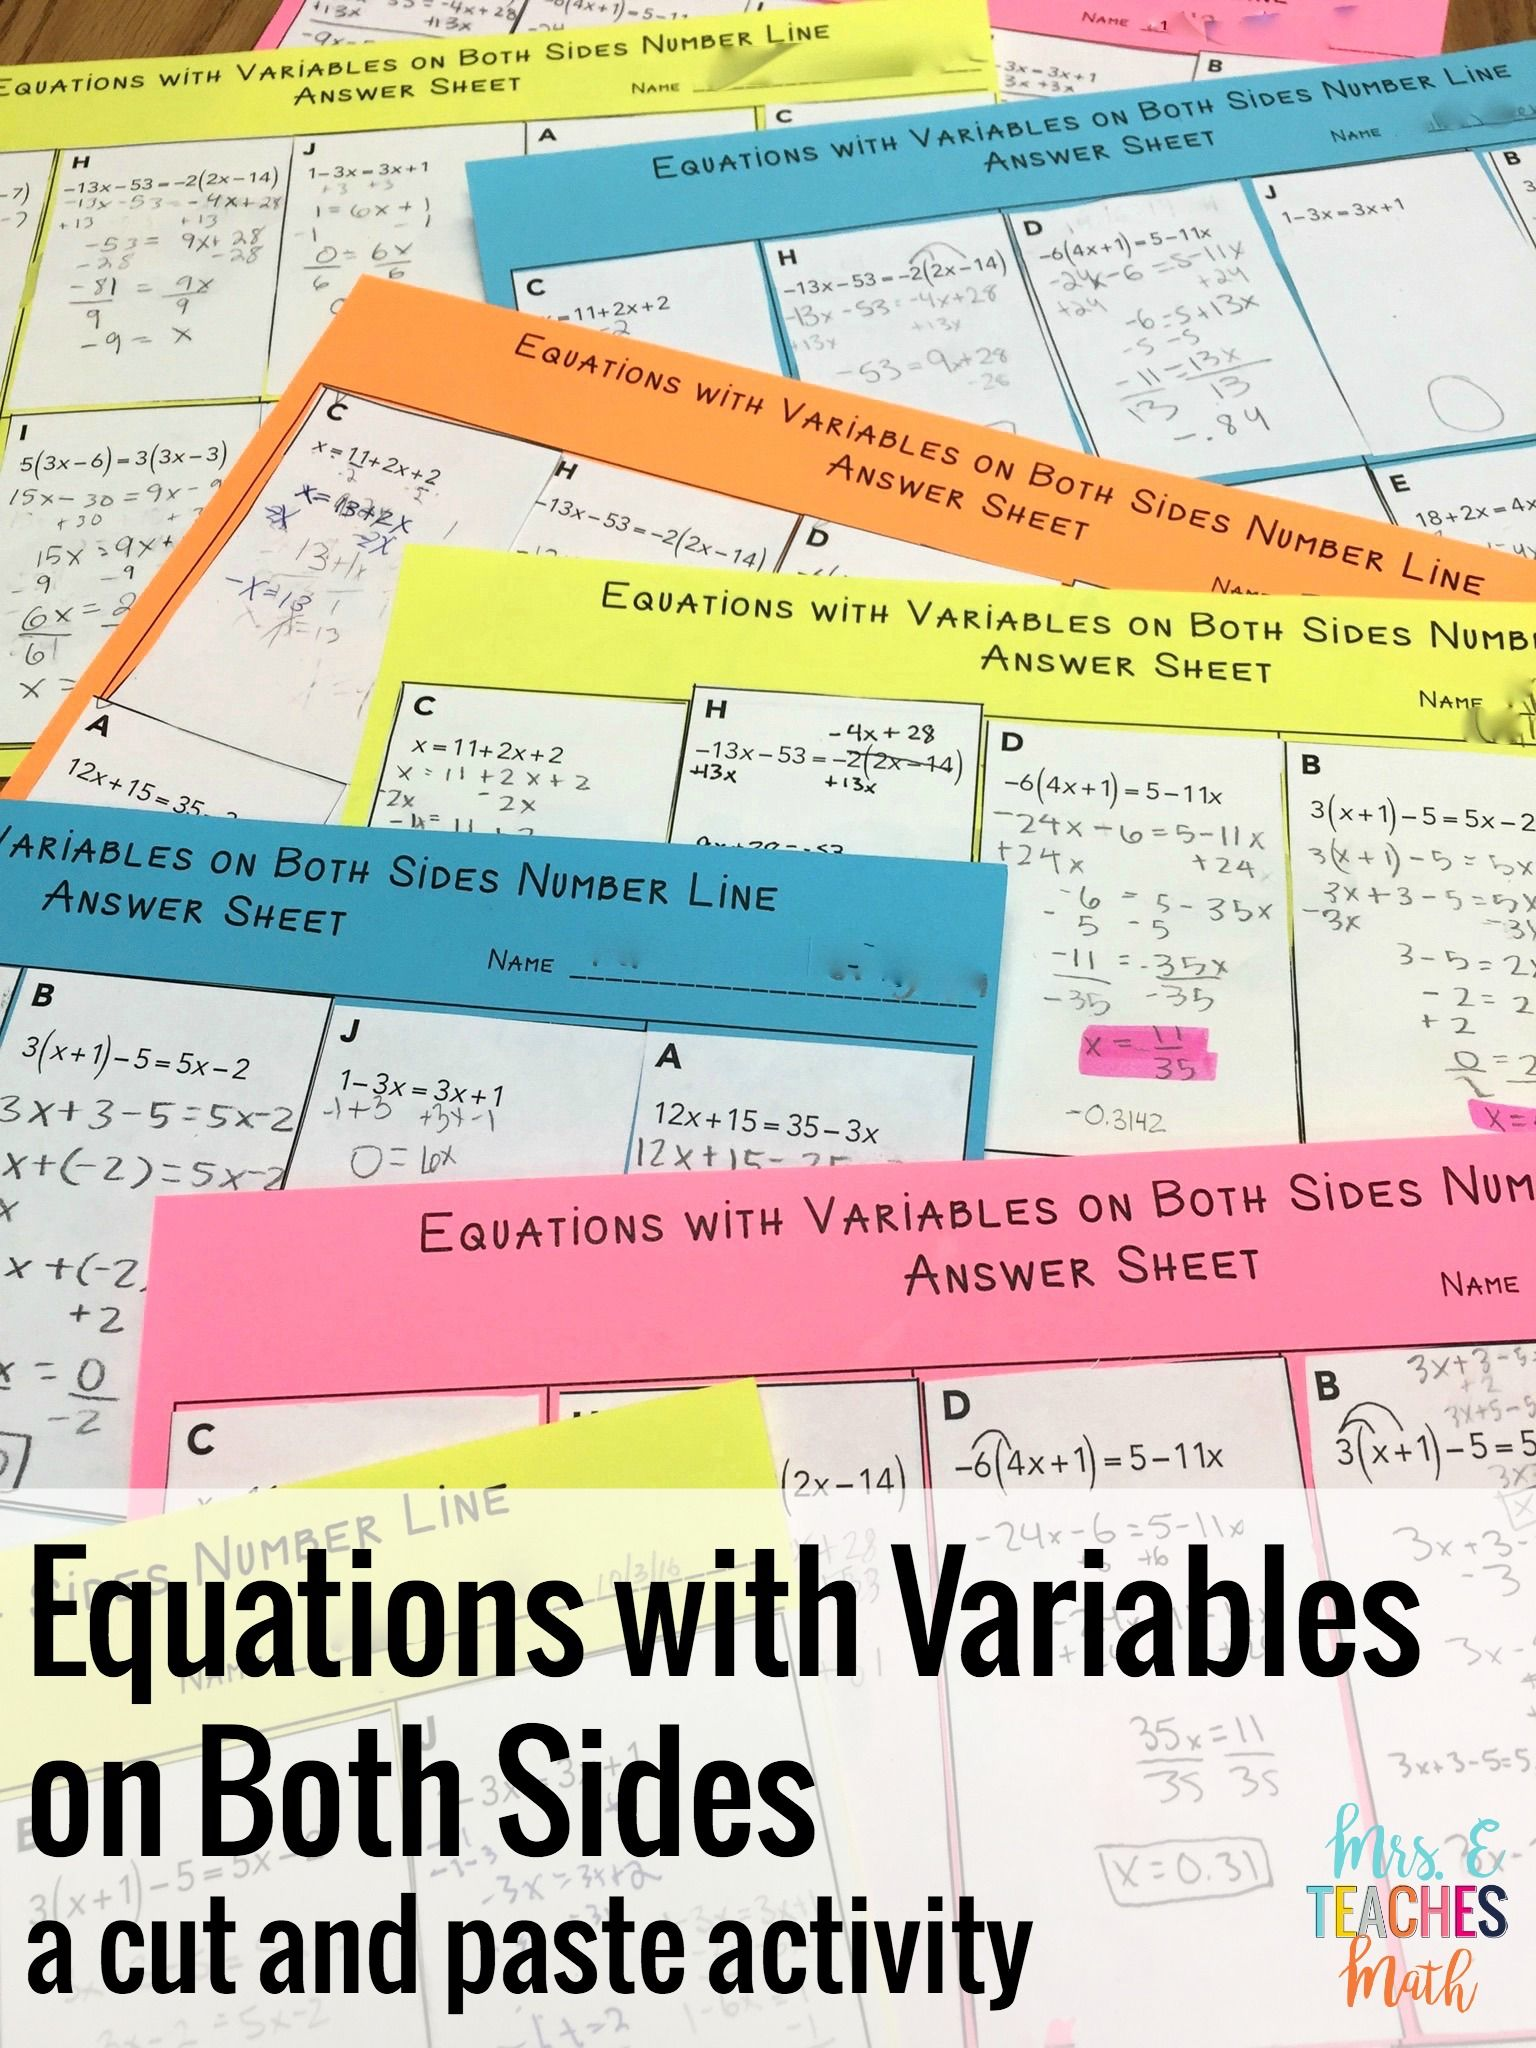 Equations With Variables On Both Sides Number Line Activity For Algebra 1 Equations Solving Equations Middle School Math Lesson Plans